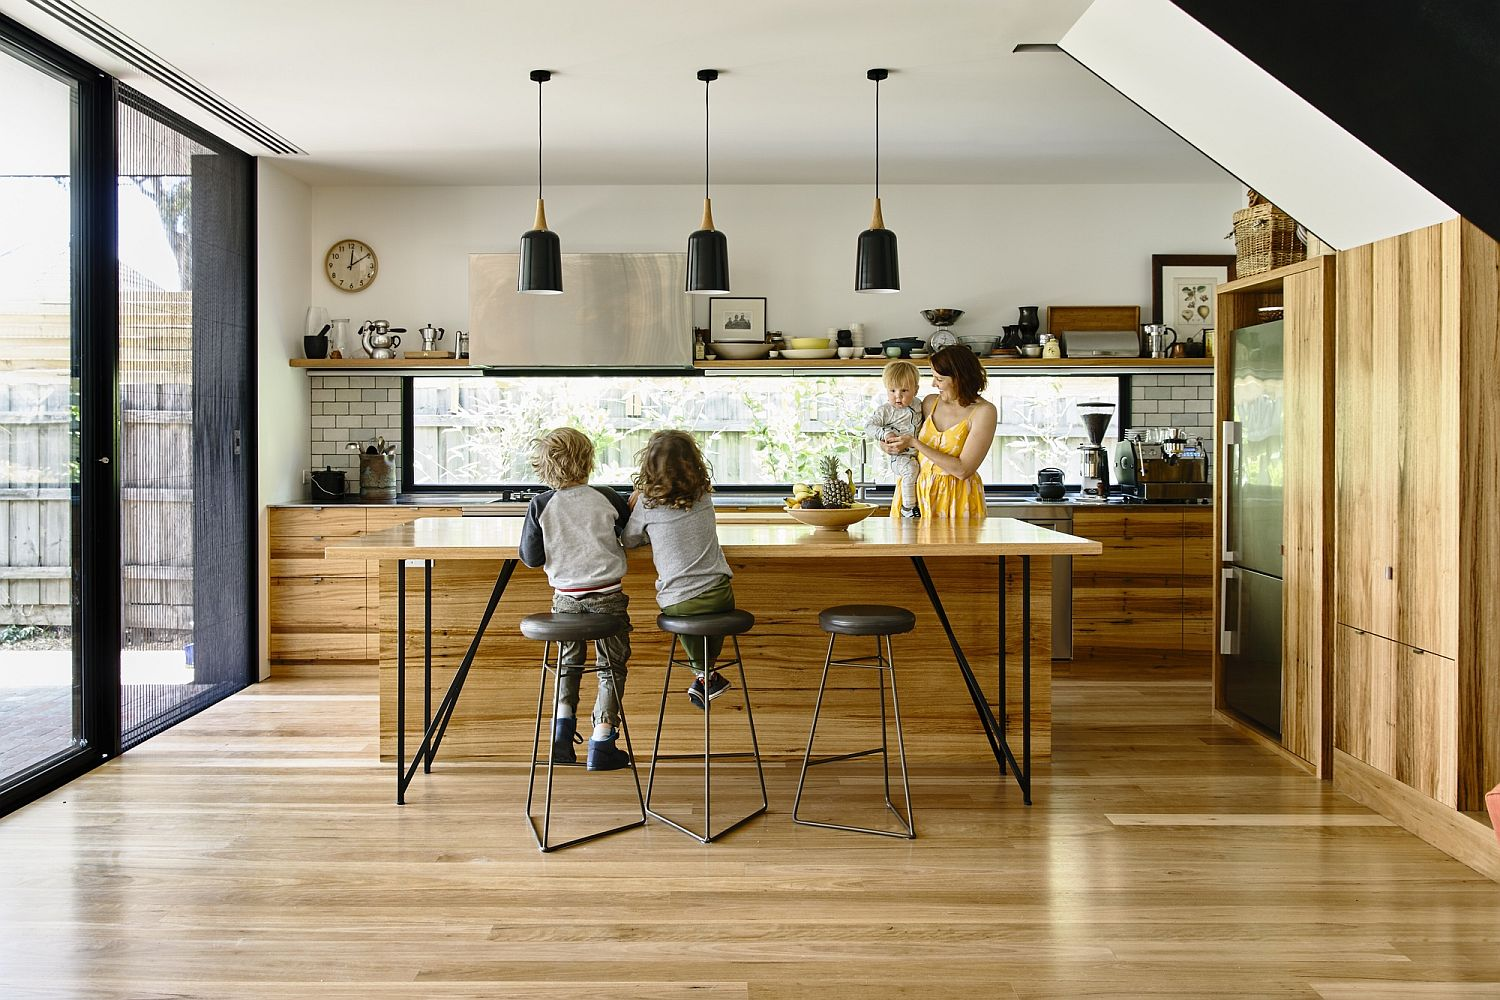 Kitchen becomes the social zone of the extended Melbourne home